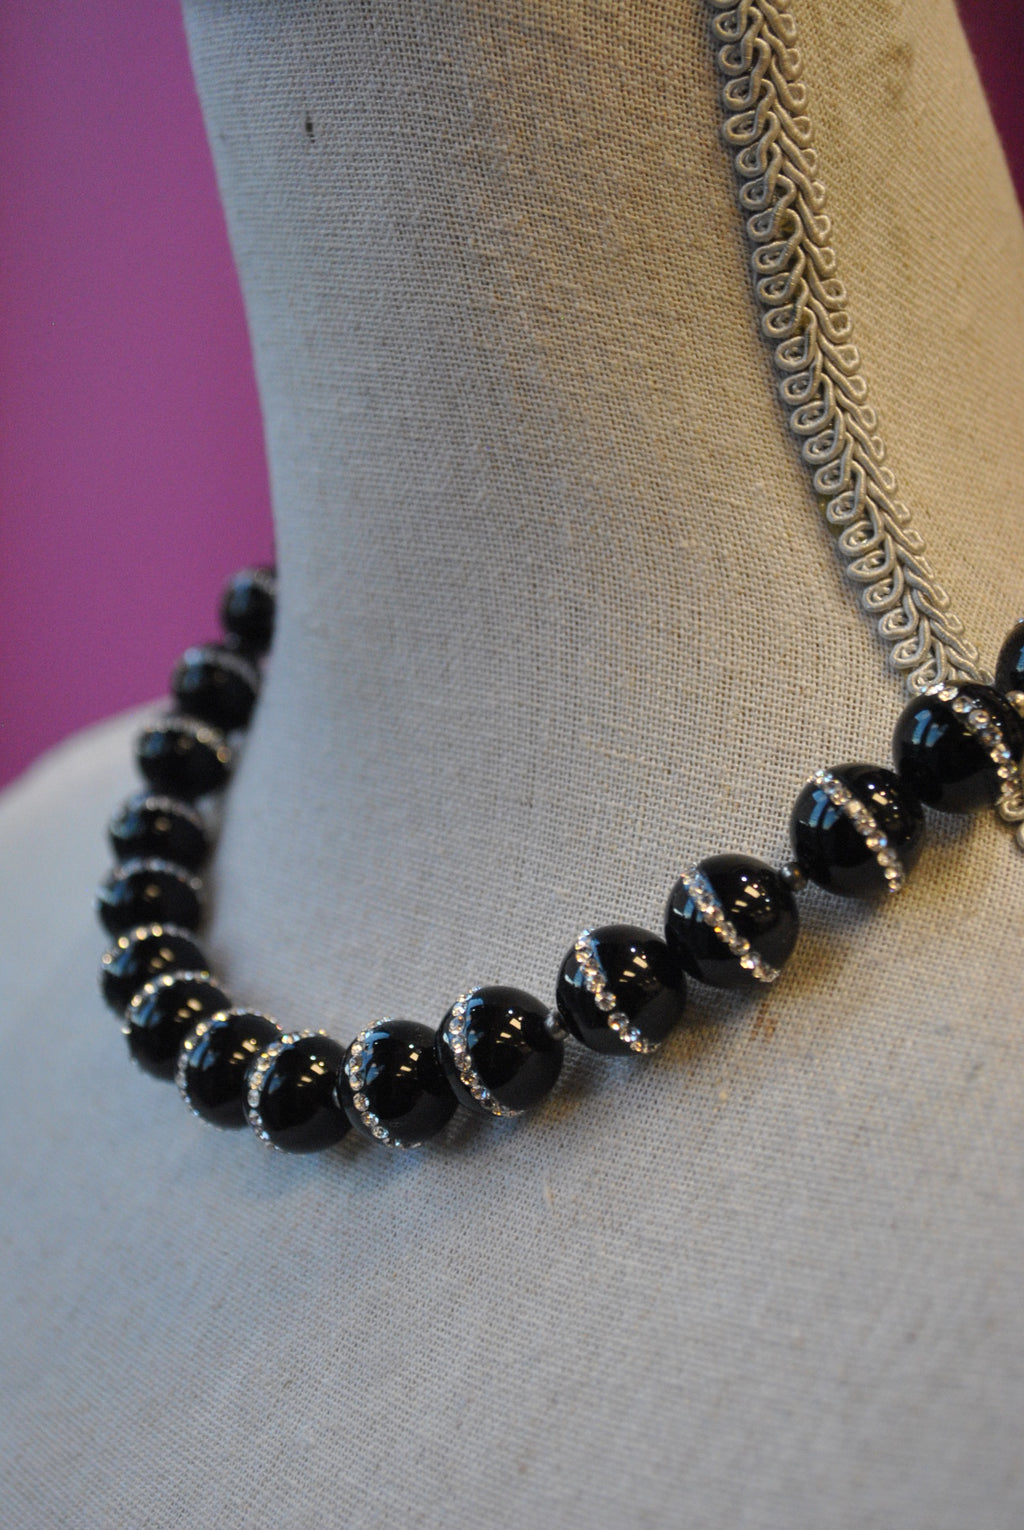 BLACK ONYX WITH SWAROVSKI CRYSTALS NECKLACE